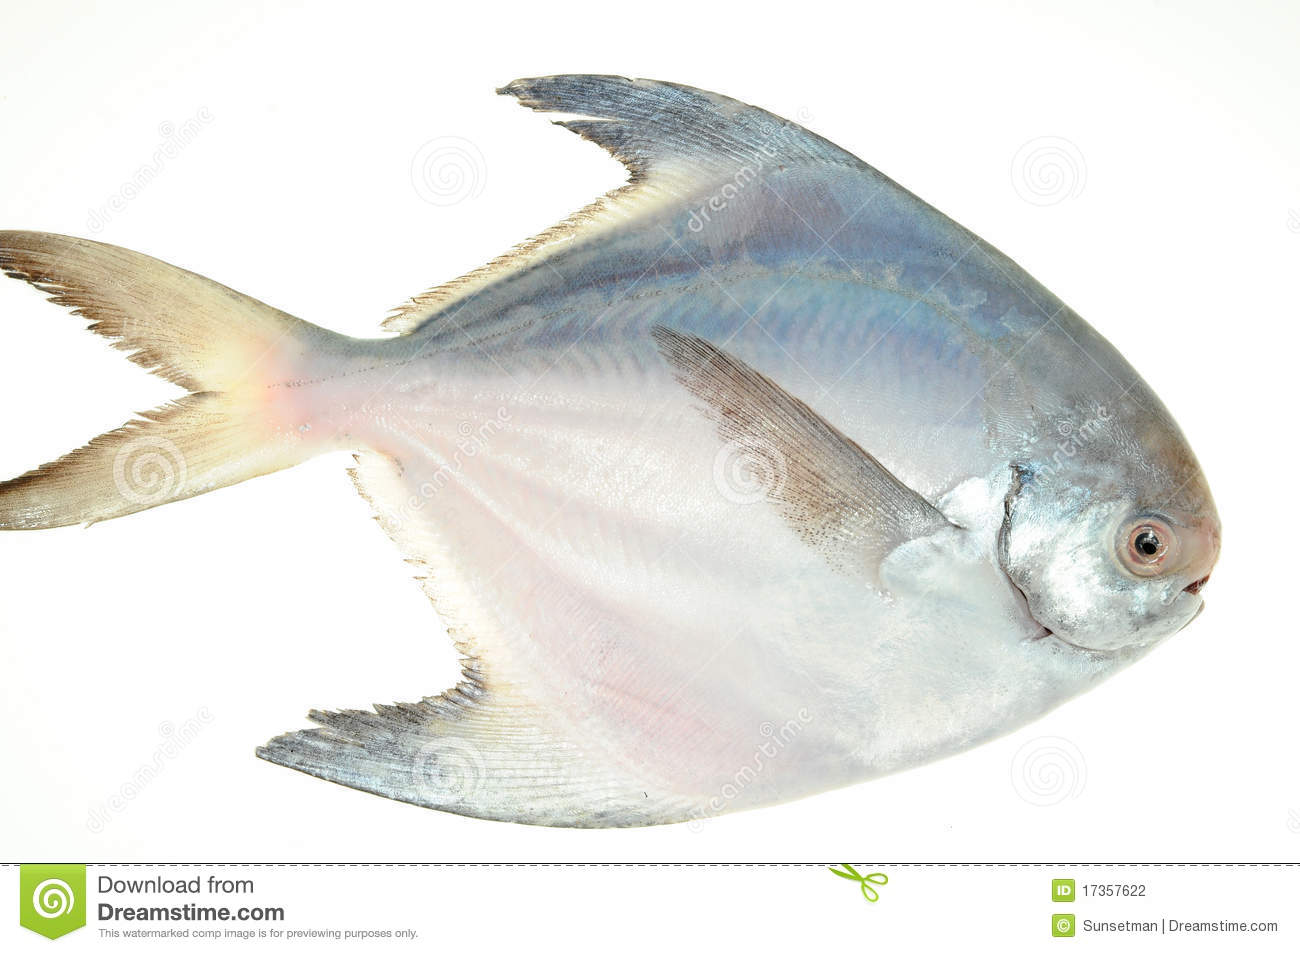 Pomfret fish stock photo image of food marine aquatic for Photos of fish